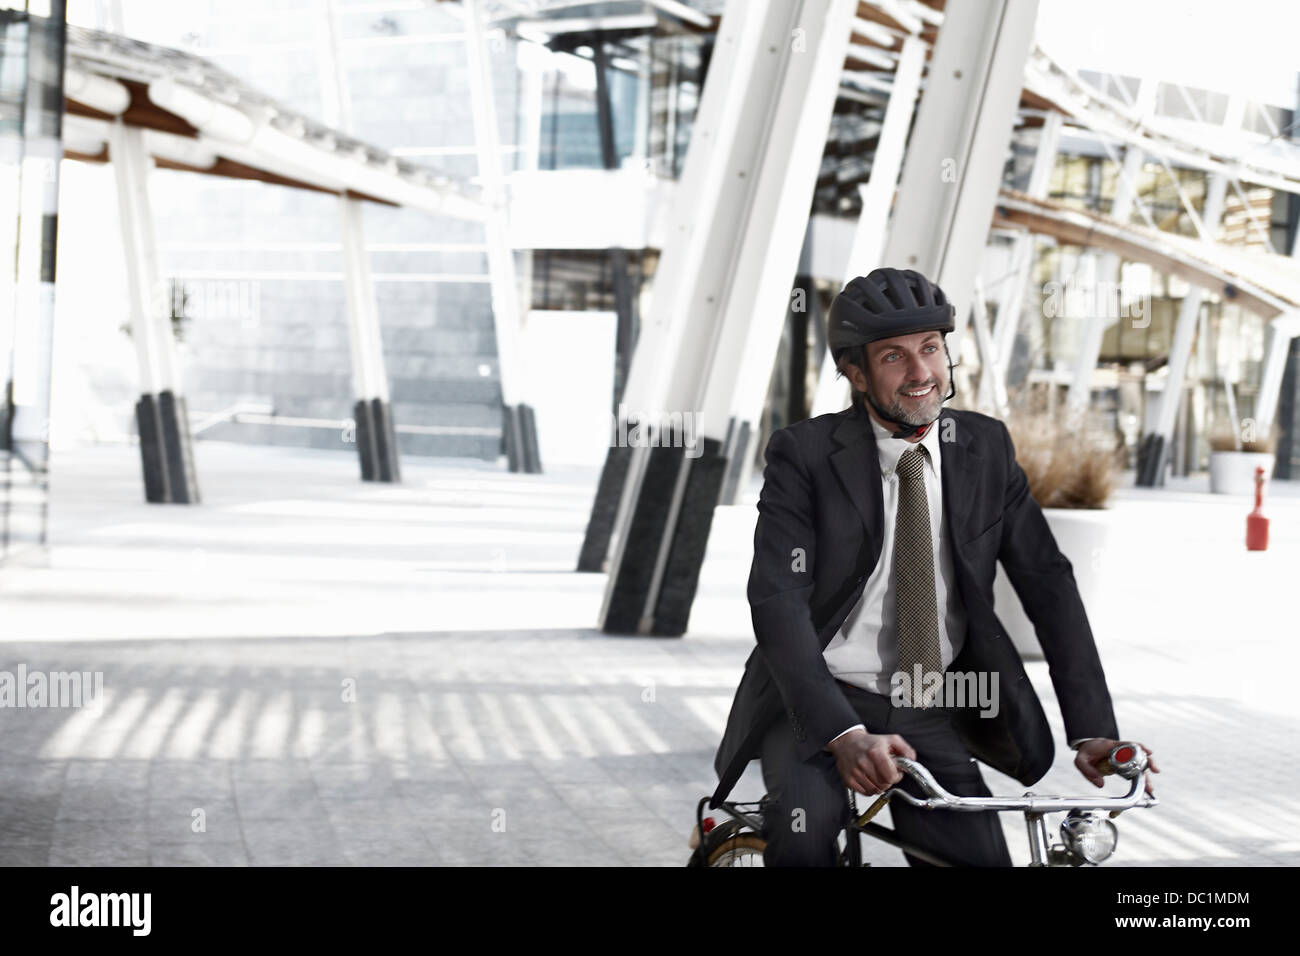 Mid adult businessman riding bicycle in city - Stock Image